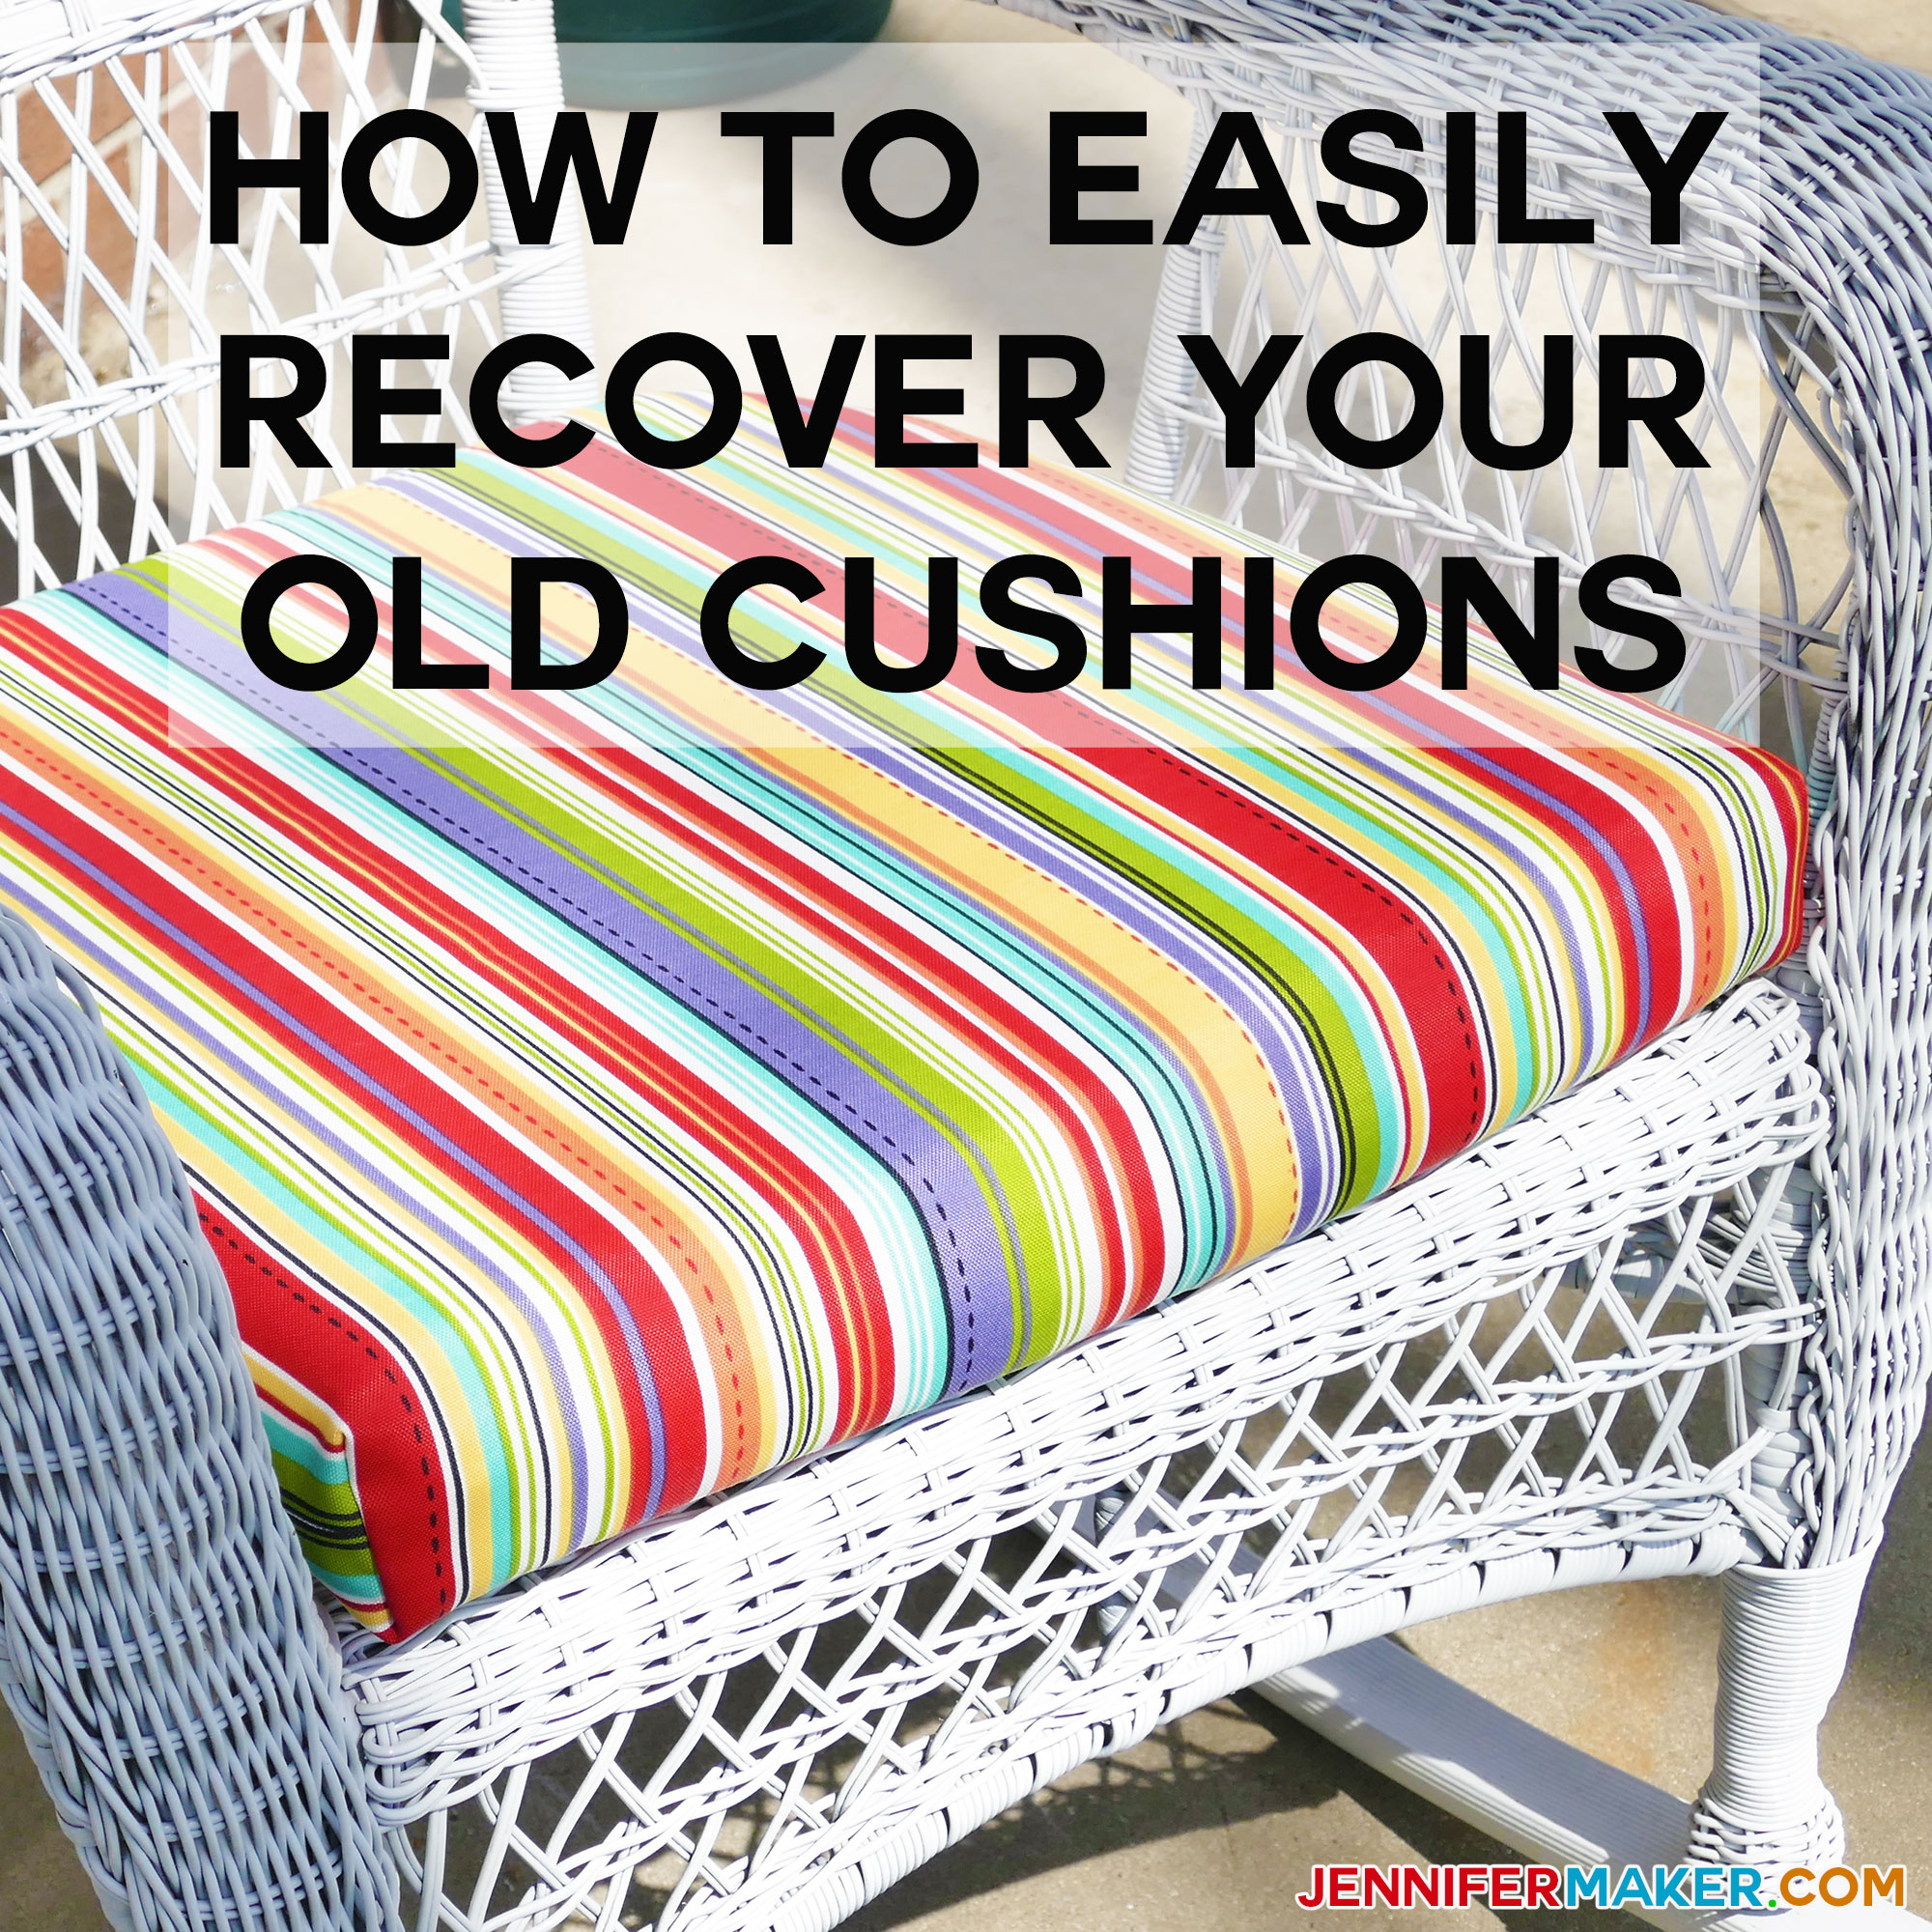 How to Recover Your Old Outdoor Cushions Easily u0026 Quickly | JenniferMaker.com  sc 1 st  Jennifer Maker & How to Recover Your Outdoor Cushions Quick u0026 Easy - Jennifer Maker